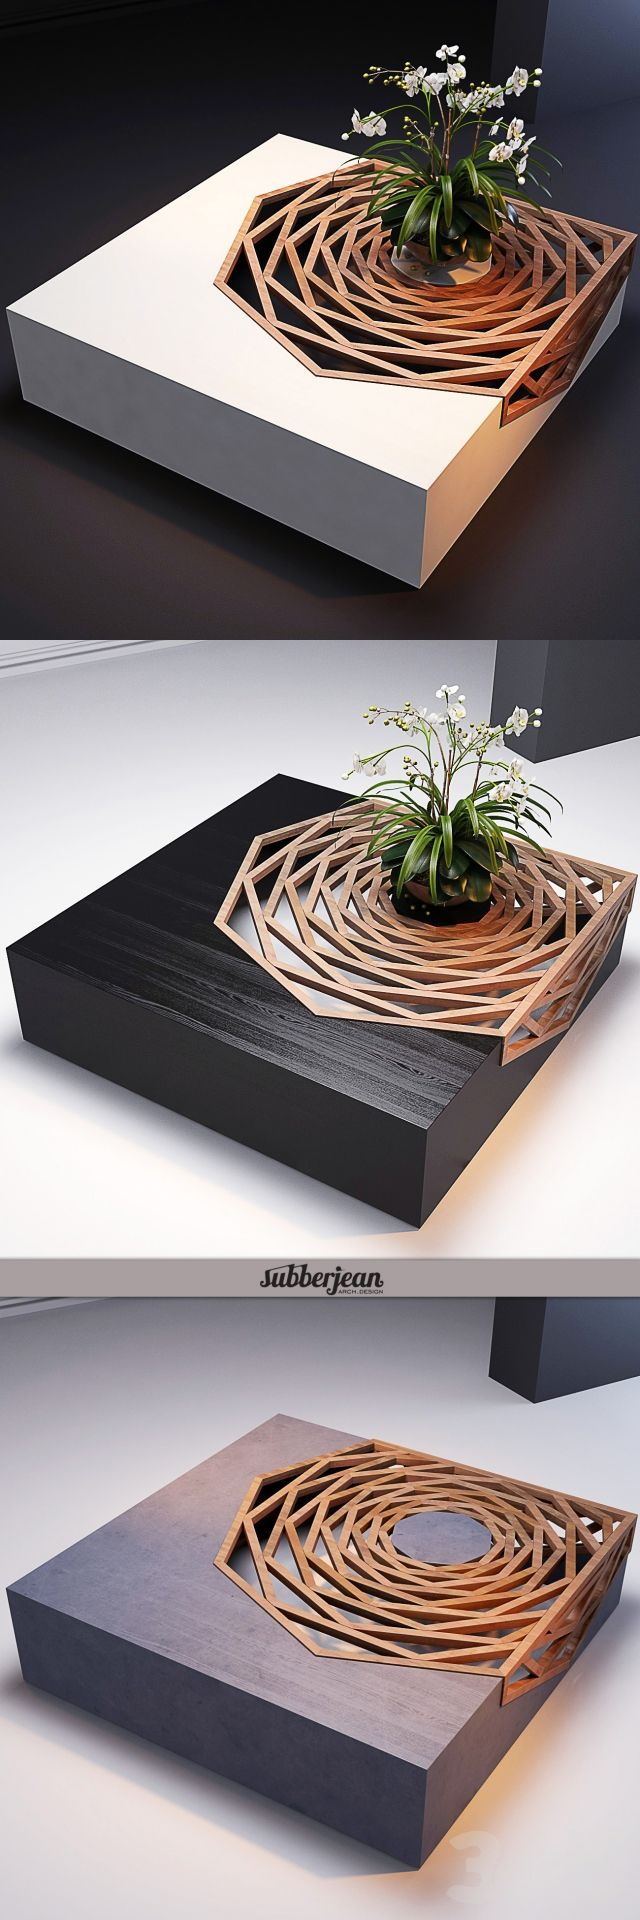 Gorgeous design wood coffee table architecture interiors design